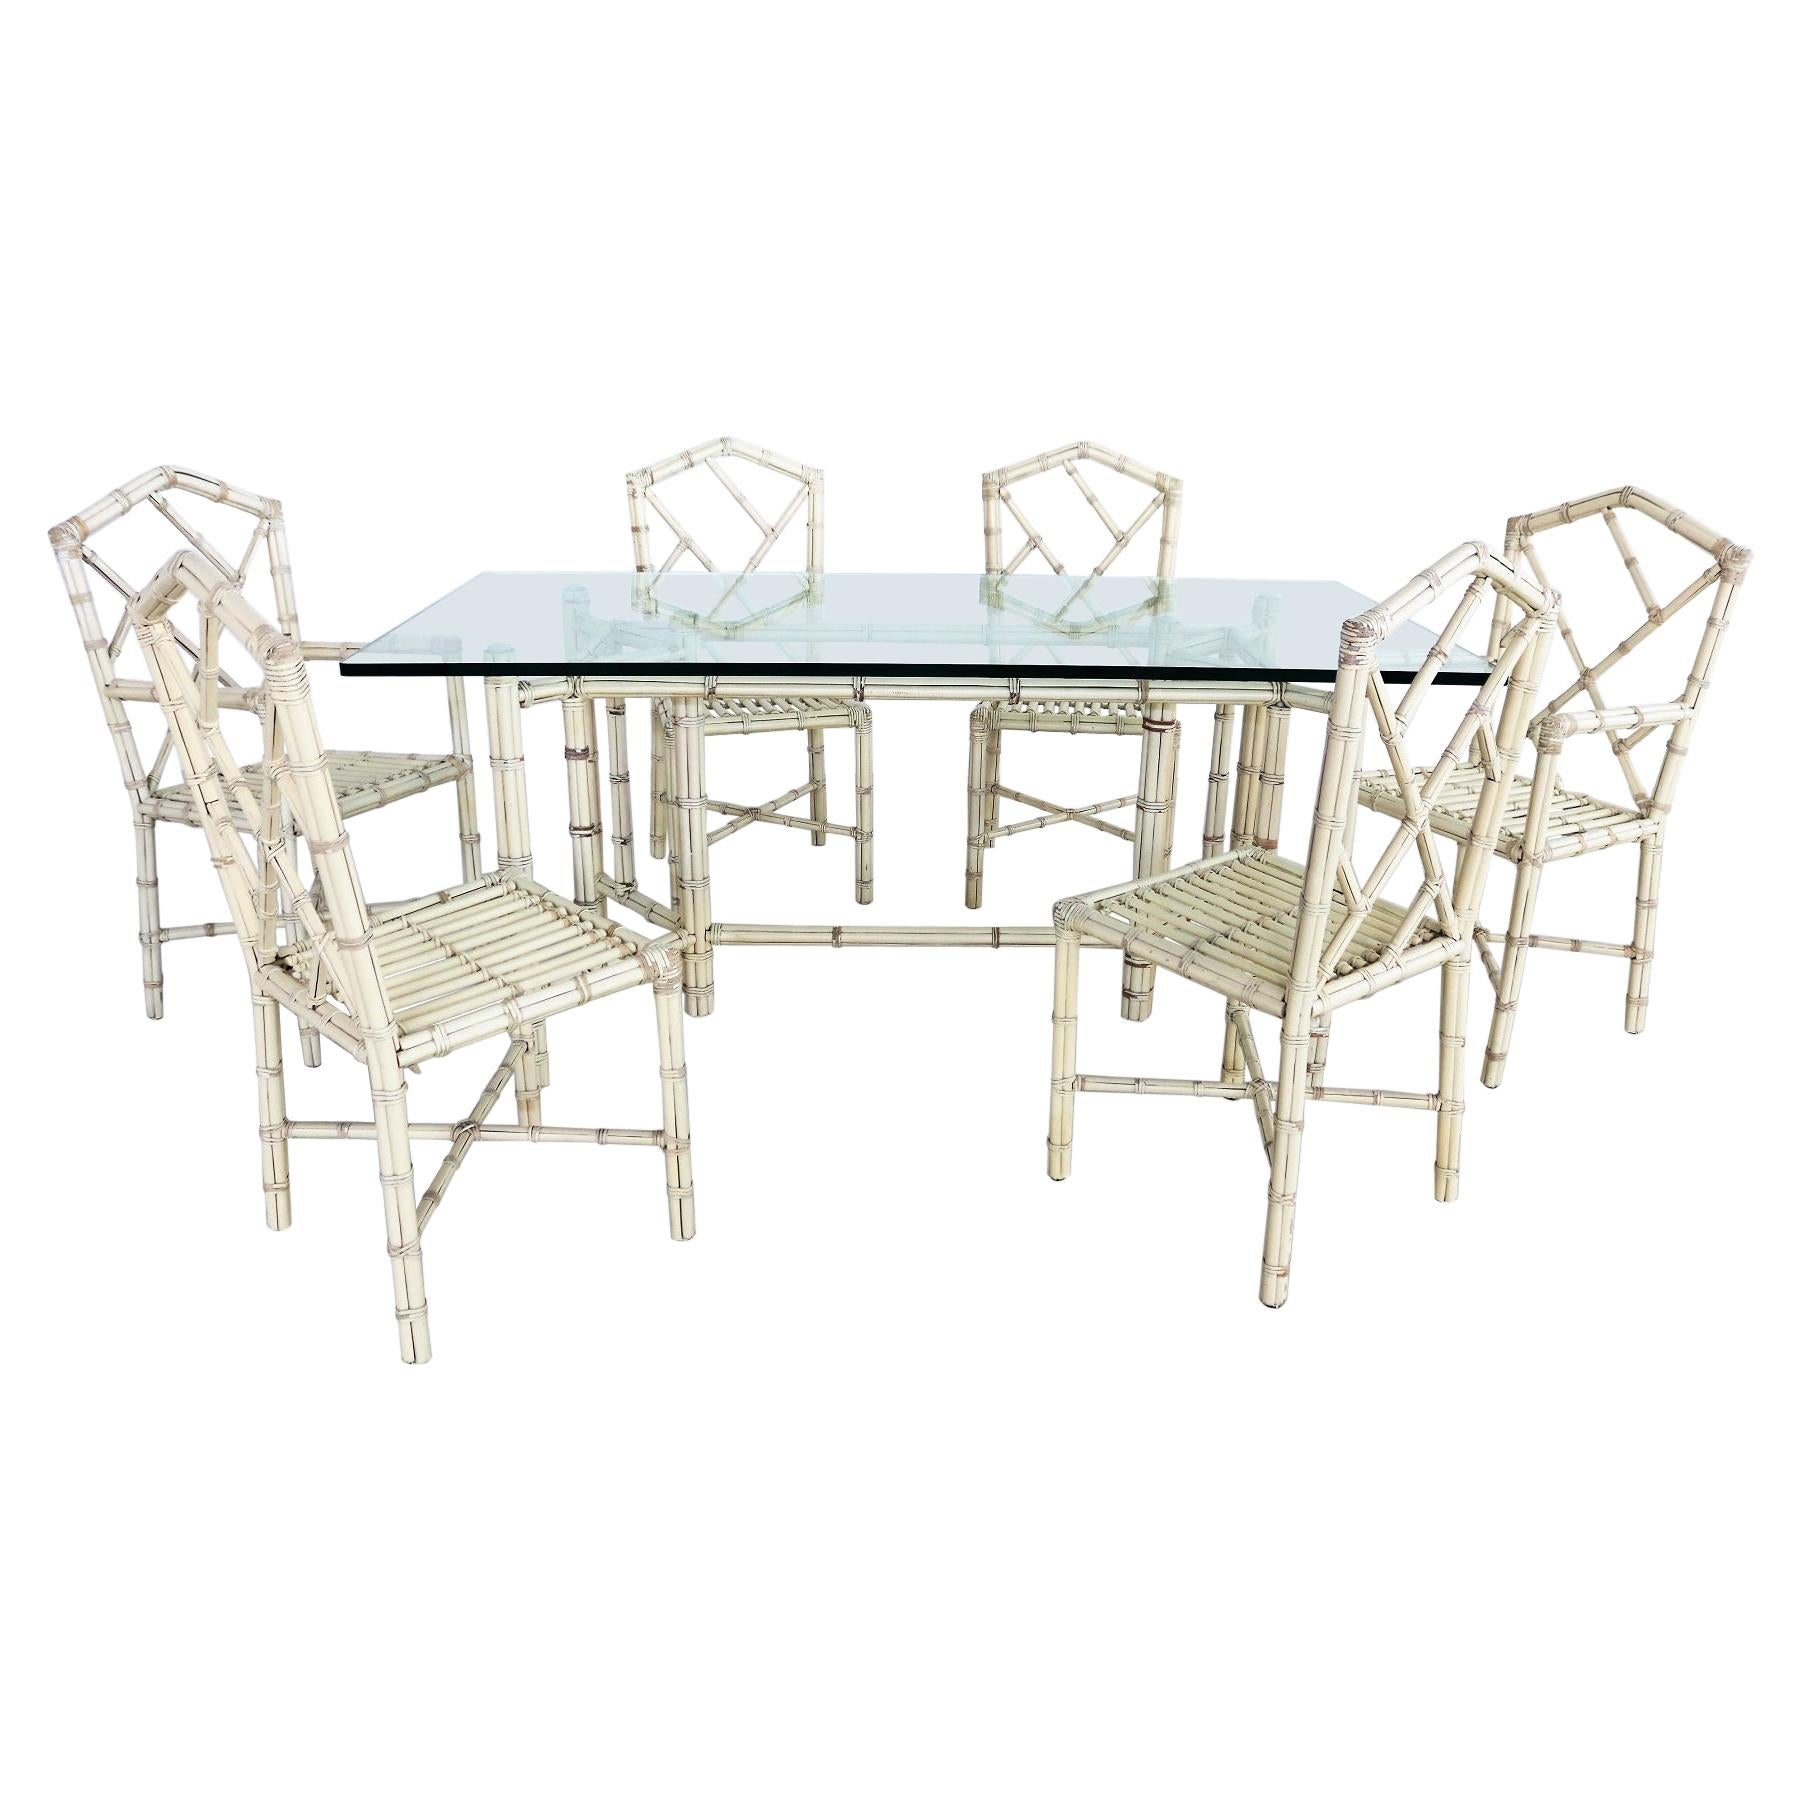 Italian Dining Set with Six Chairs and Table in Varnished Bamboo, 1970s